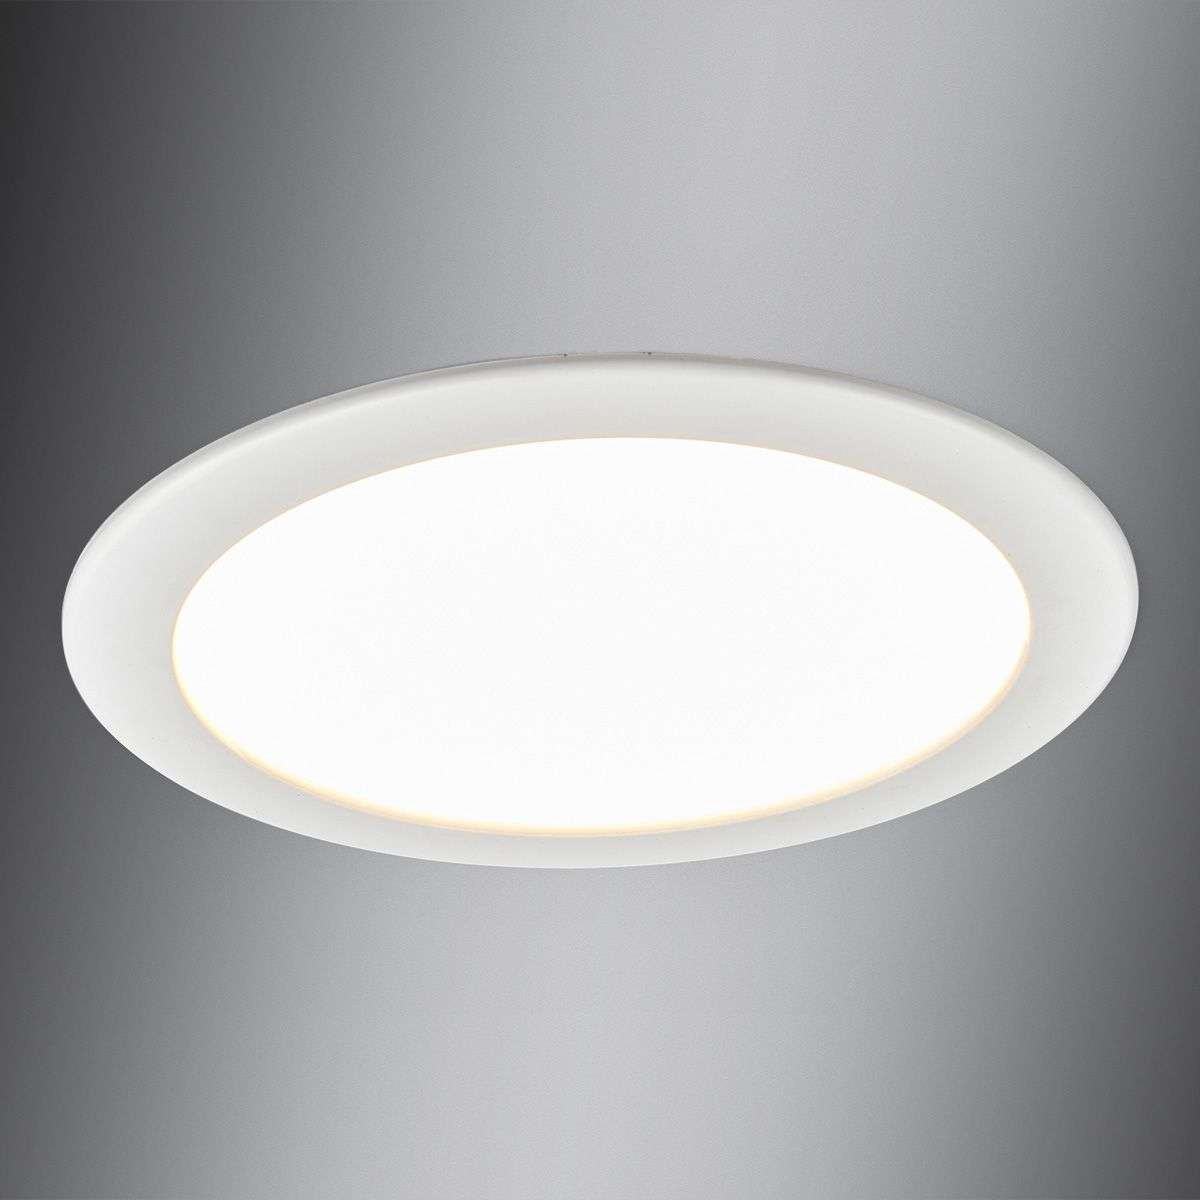 Bathroom recessed light editha with leds 18 w lights bathroom recessed light editha with leds 18 w aloadofball Image collections